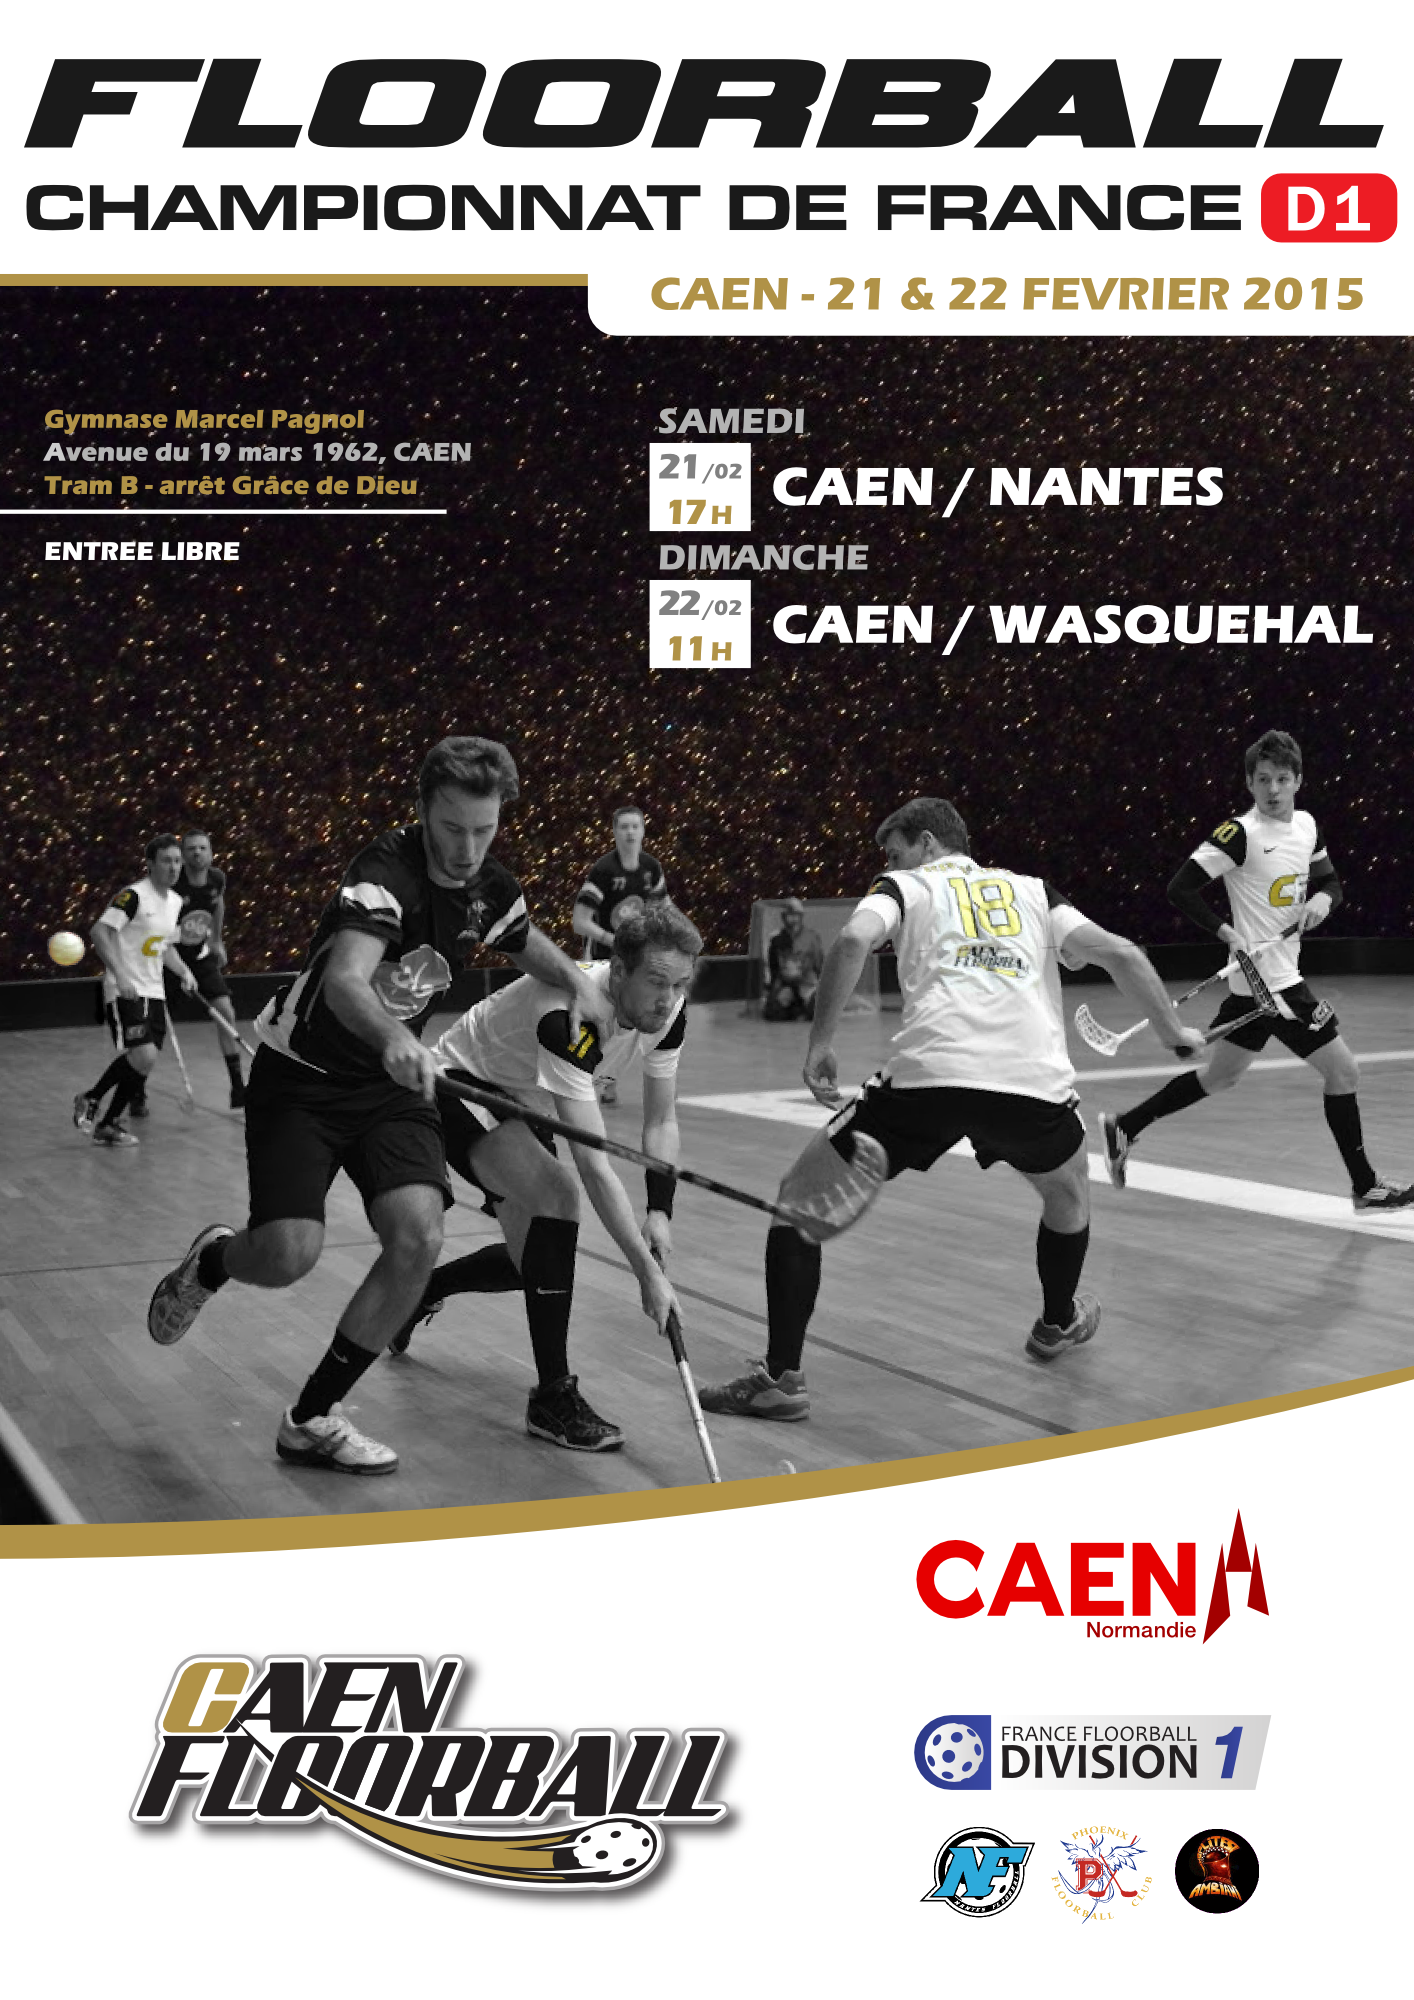 Affiche du week-end floorball D1 à Caen, 21-22 février !